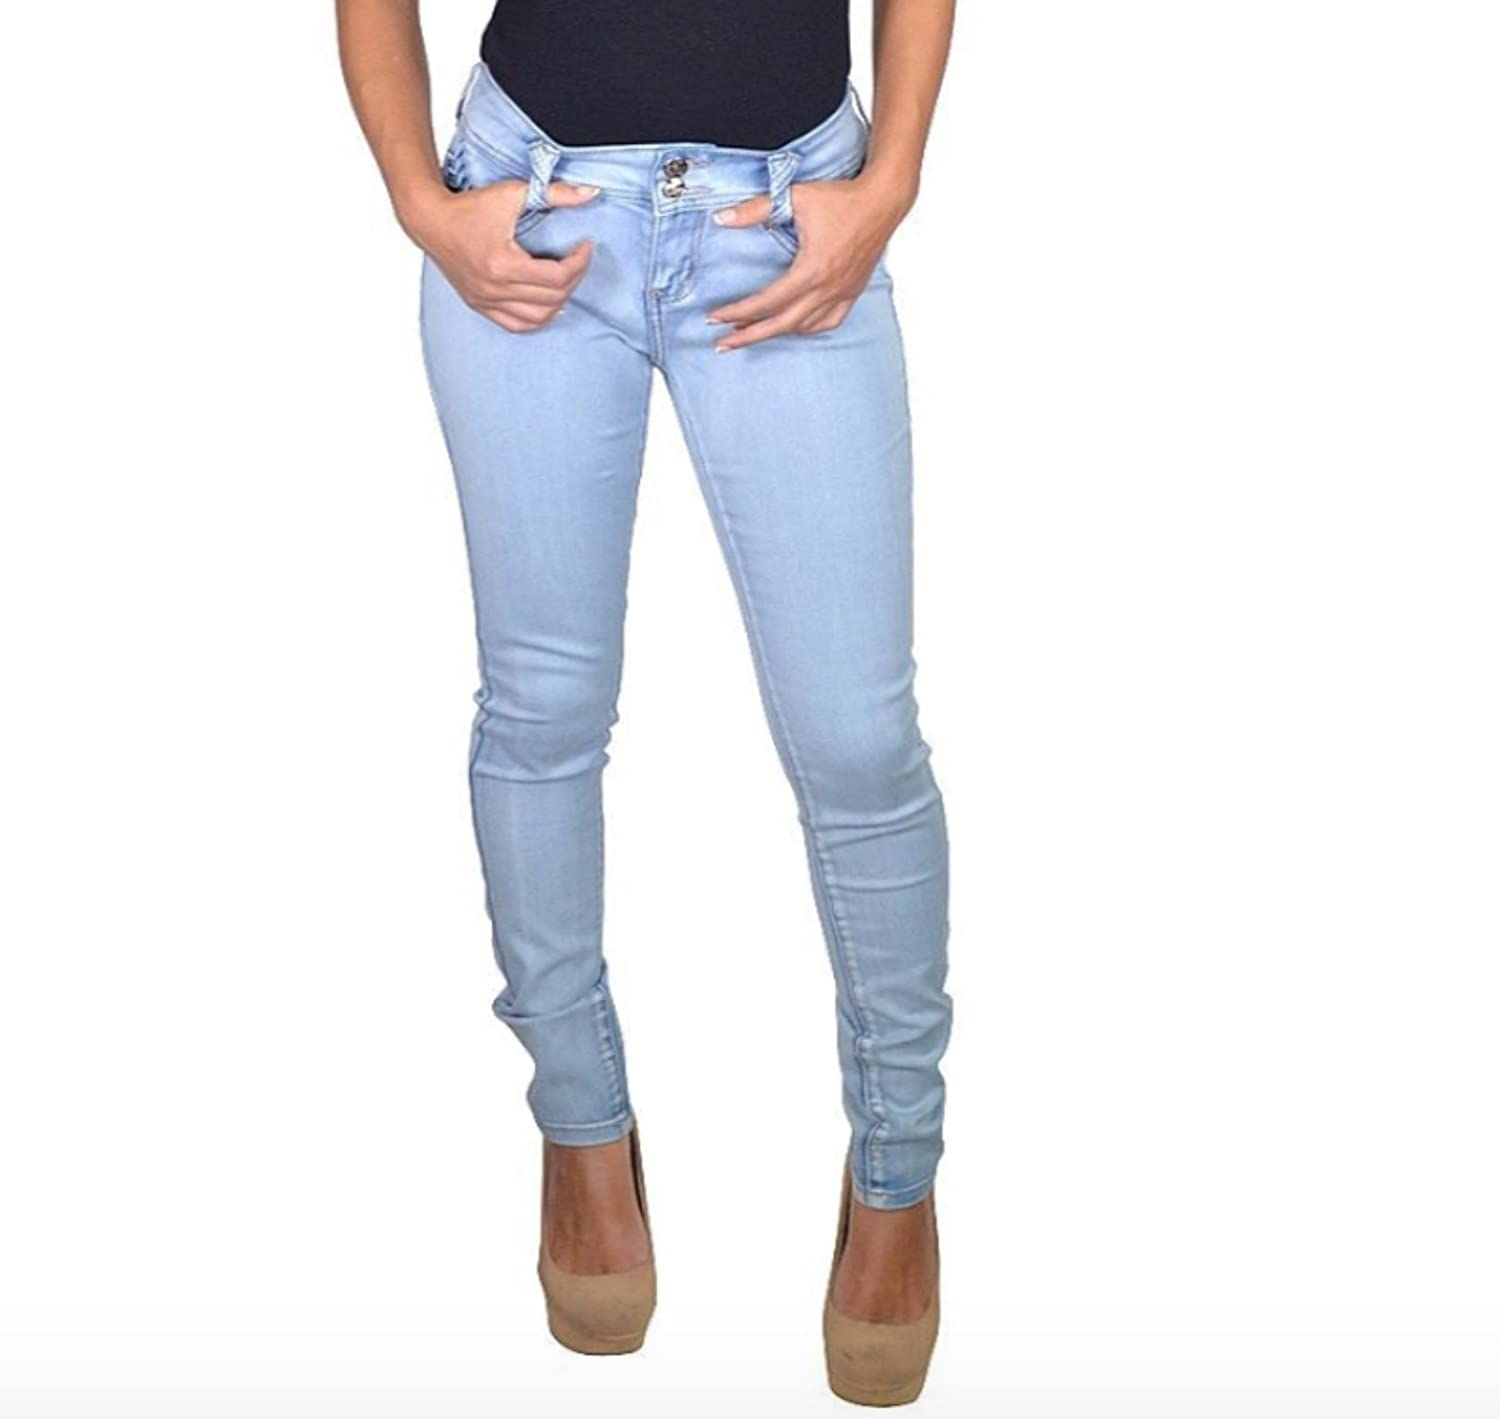 GOOD AMERICAN Women's Jeans, compare prices and styles from a range of retailers.